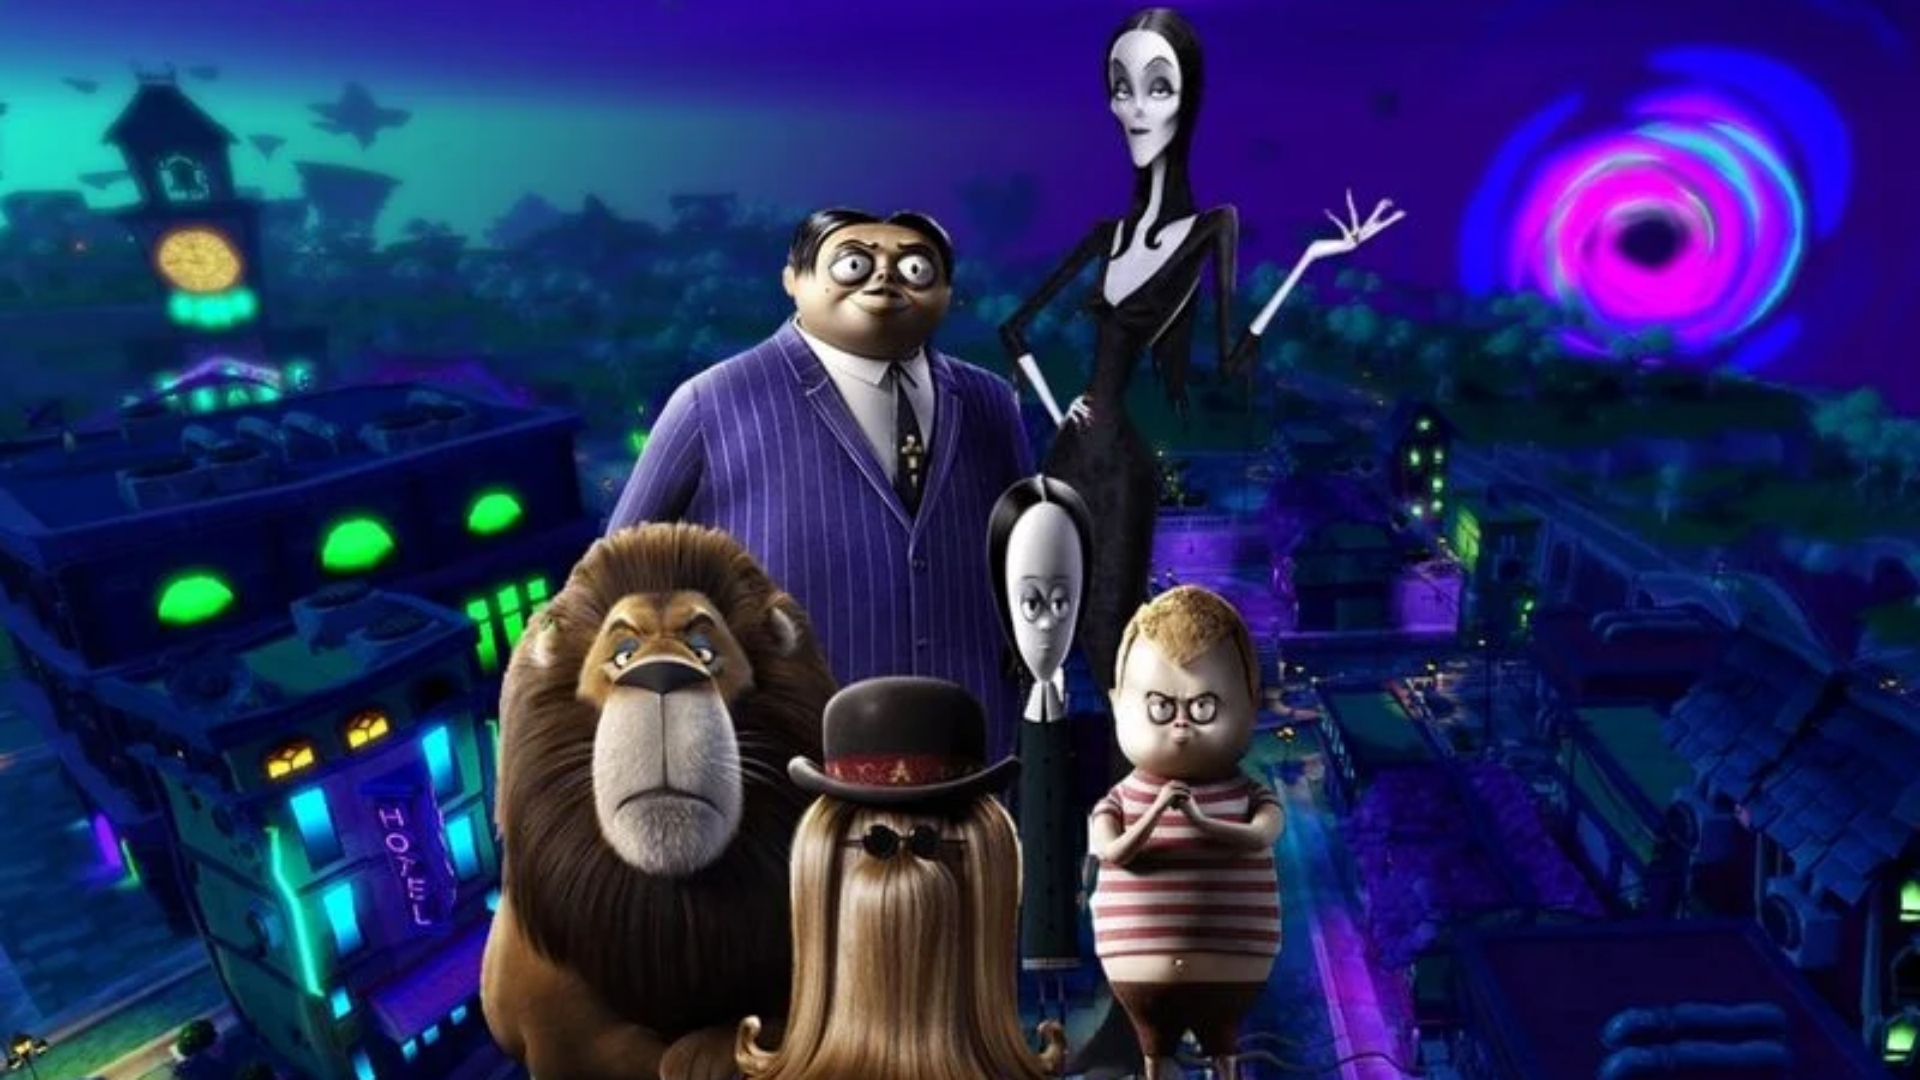 Addams-Family-Comes-To-Robloxs-Ghostopia-GamersRD (1)